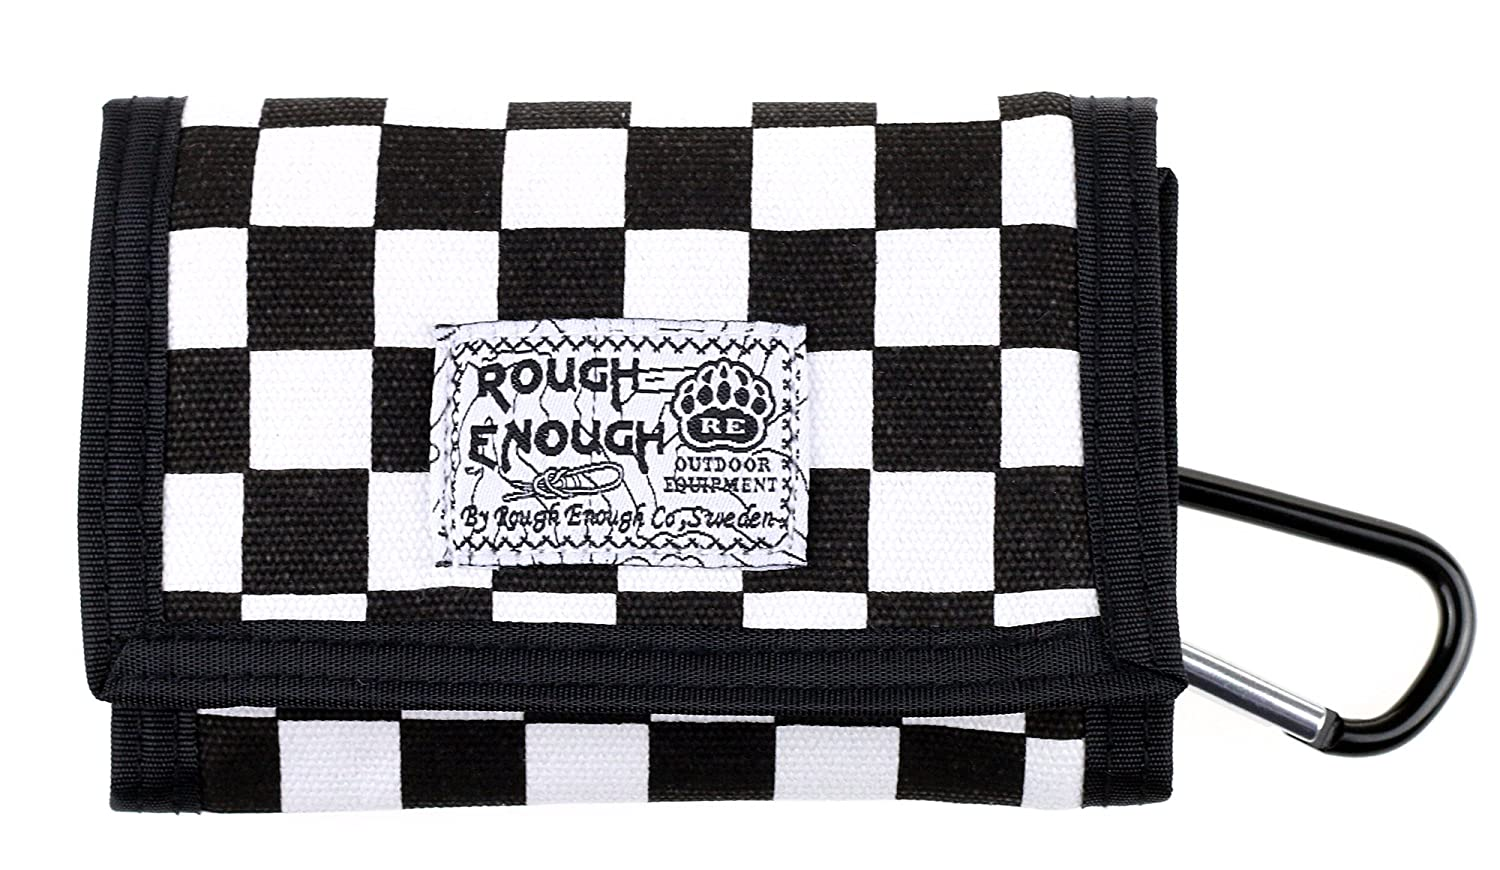 Rough Enough Premium Canvas Polyester Plaid Tartan Sports Outdoors Travel Classic Basics Small Portable Trifold Coin Wallet Purse Holder Organizer Case with Zippers for Kids Boy Men Women ROUGH ENOUGH INC. RE8403